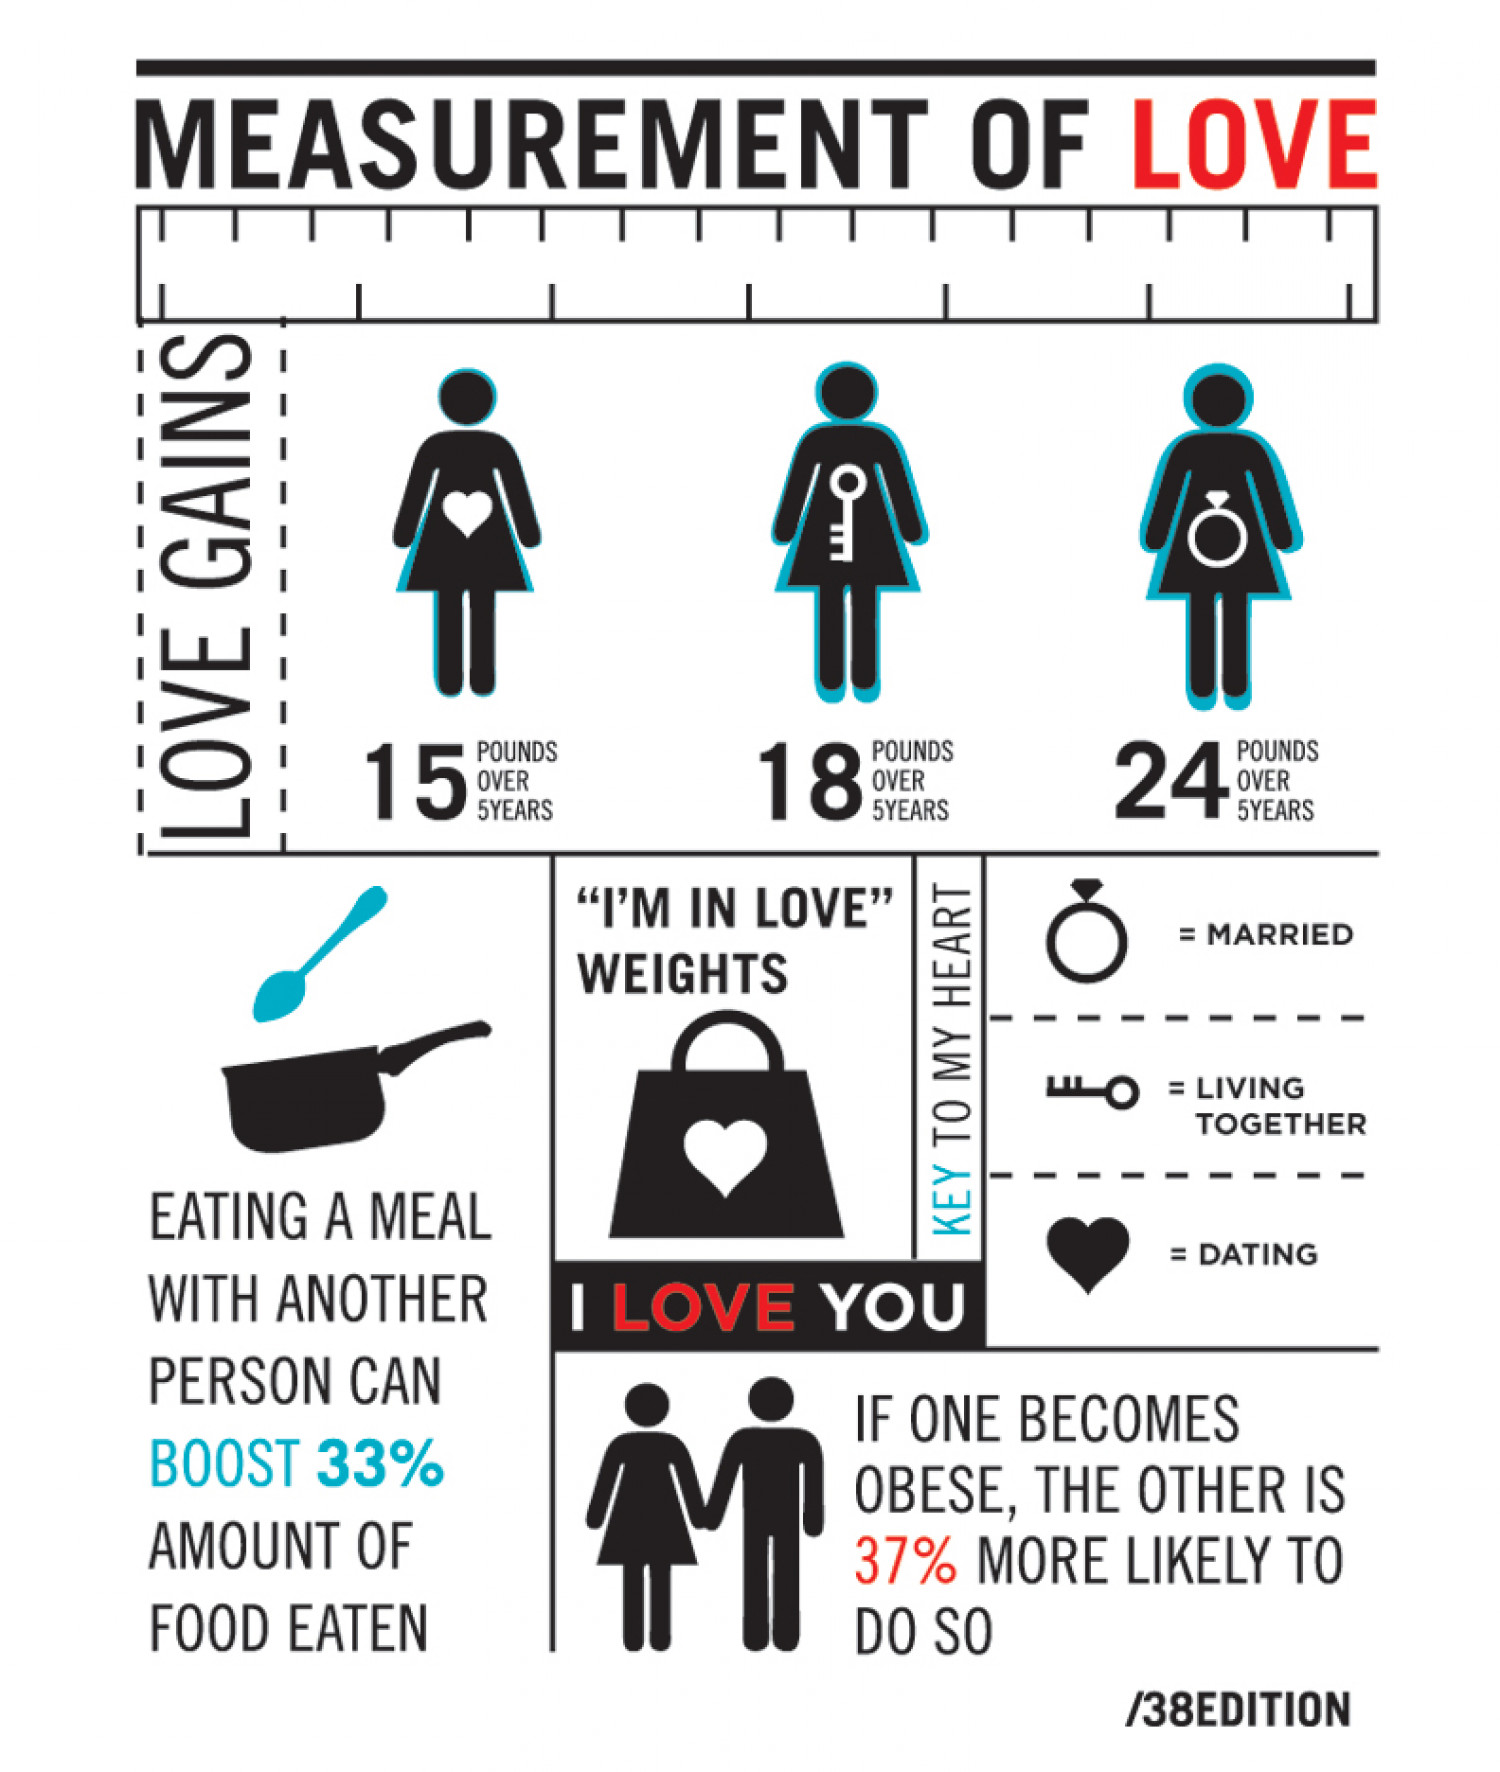 Measurement of Love Infographic